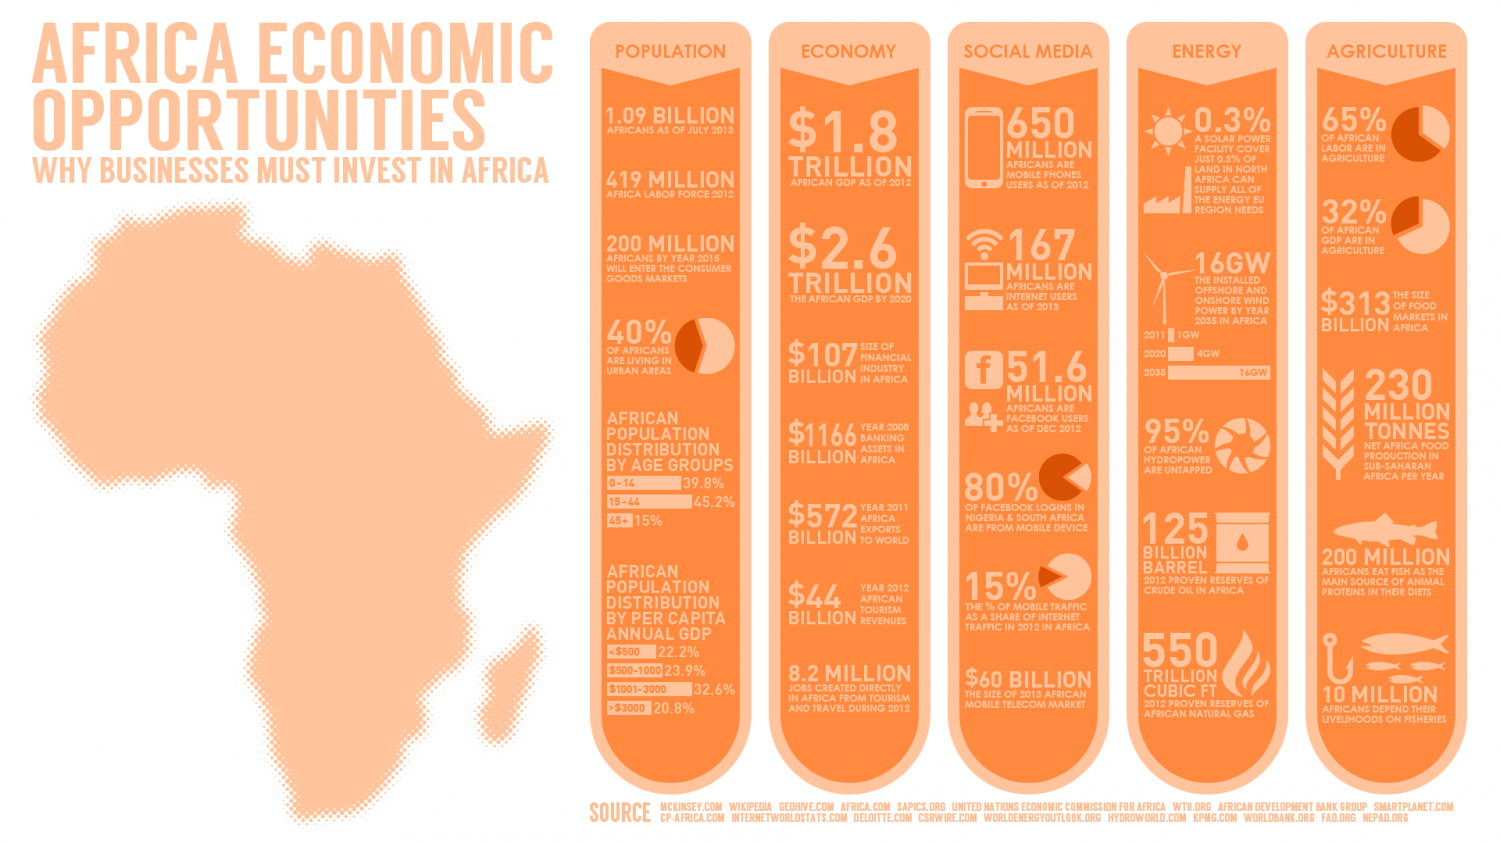 Africa Economic Opportunities: Why Businesses must invest in Africa Infographic